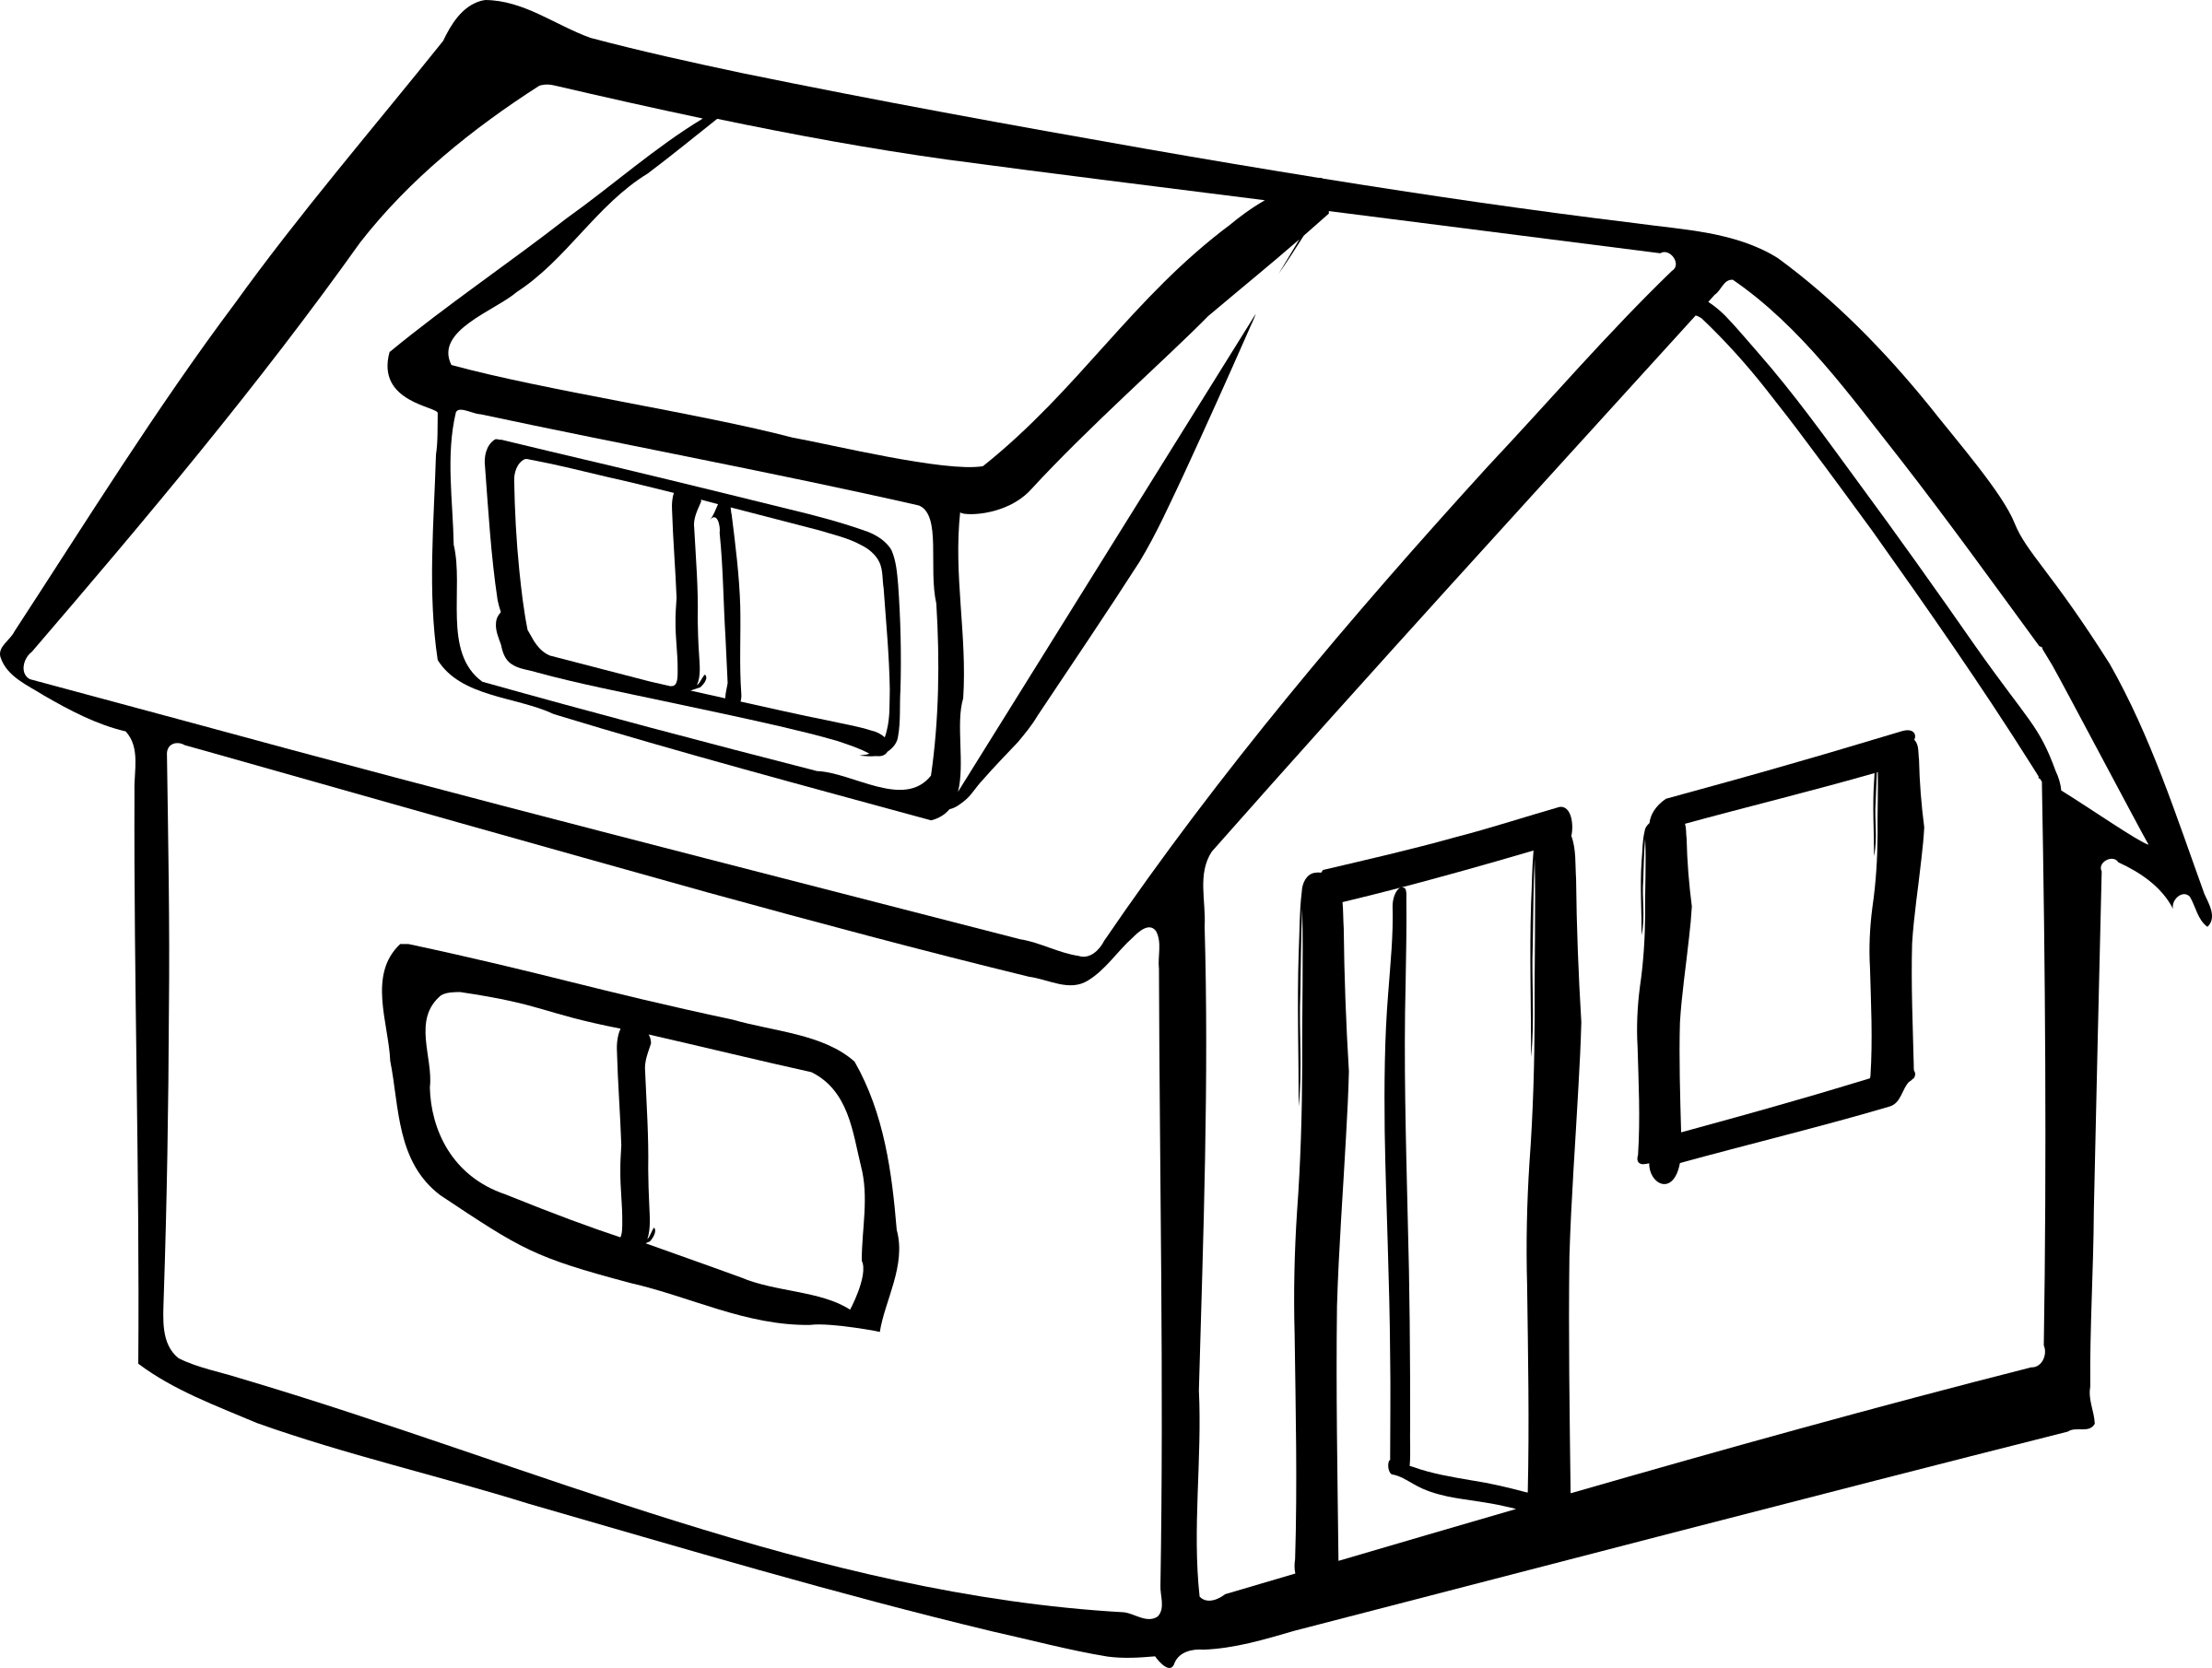 House outline png. Clipart blank detached big